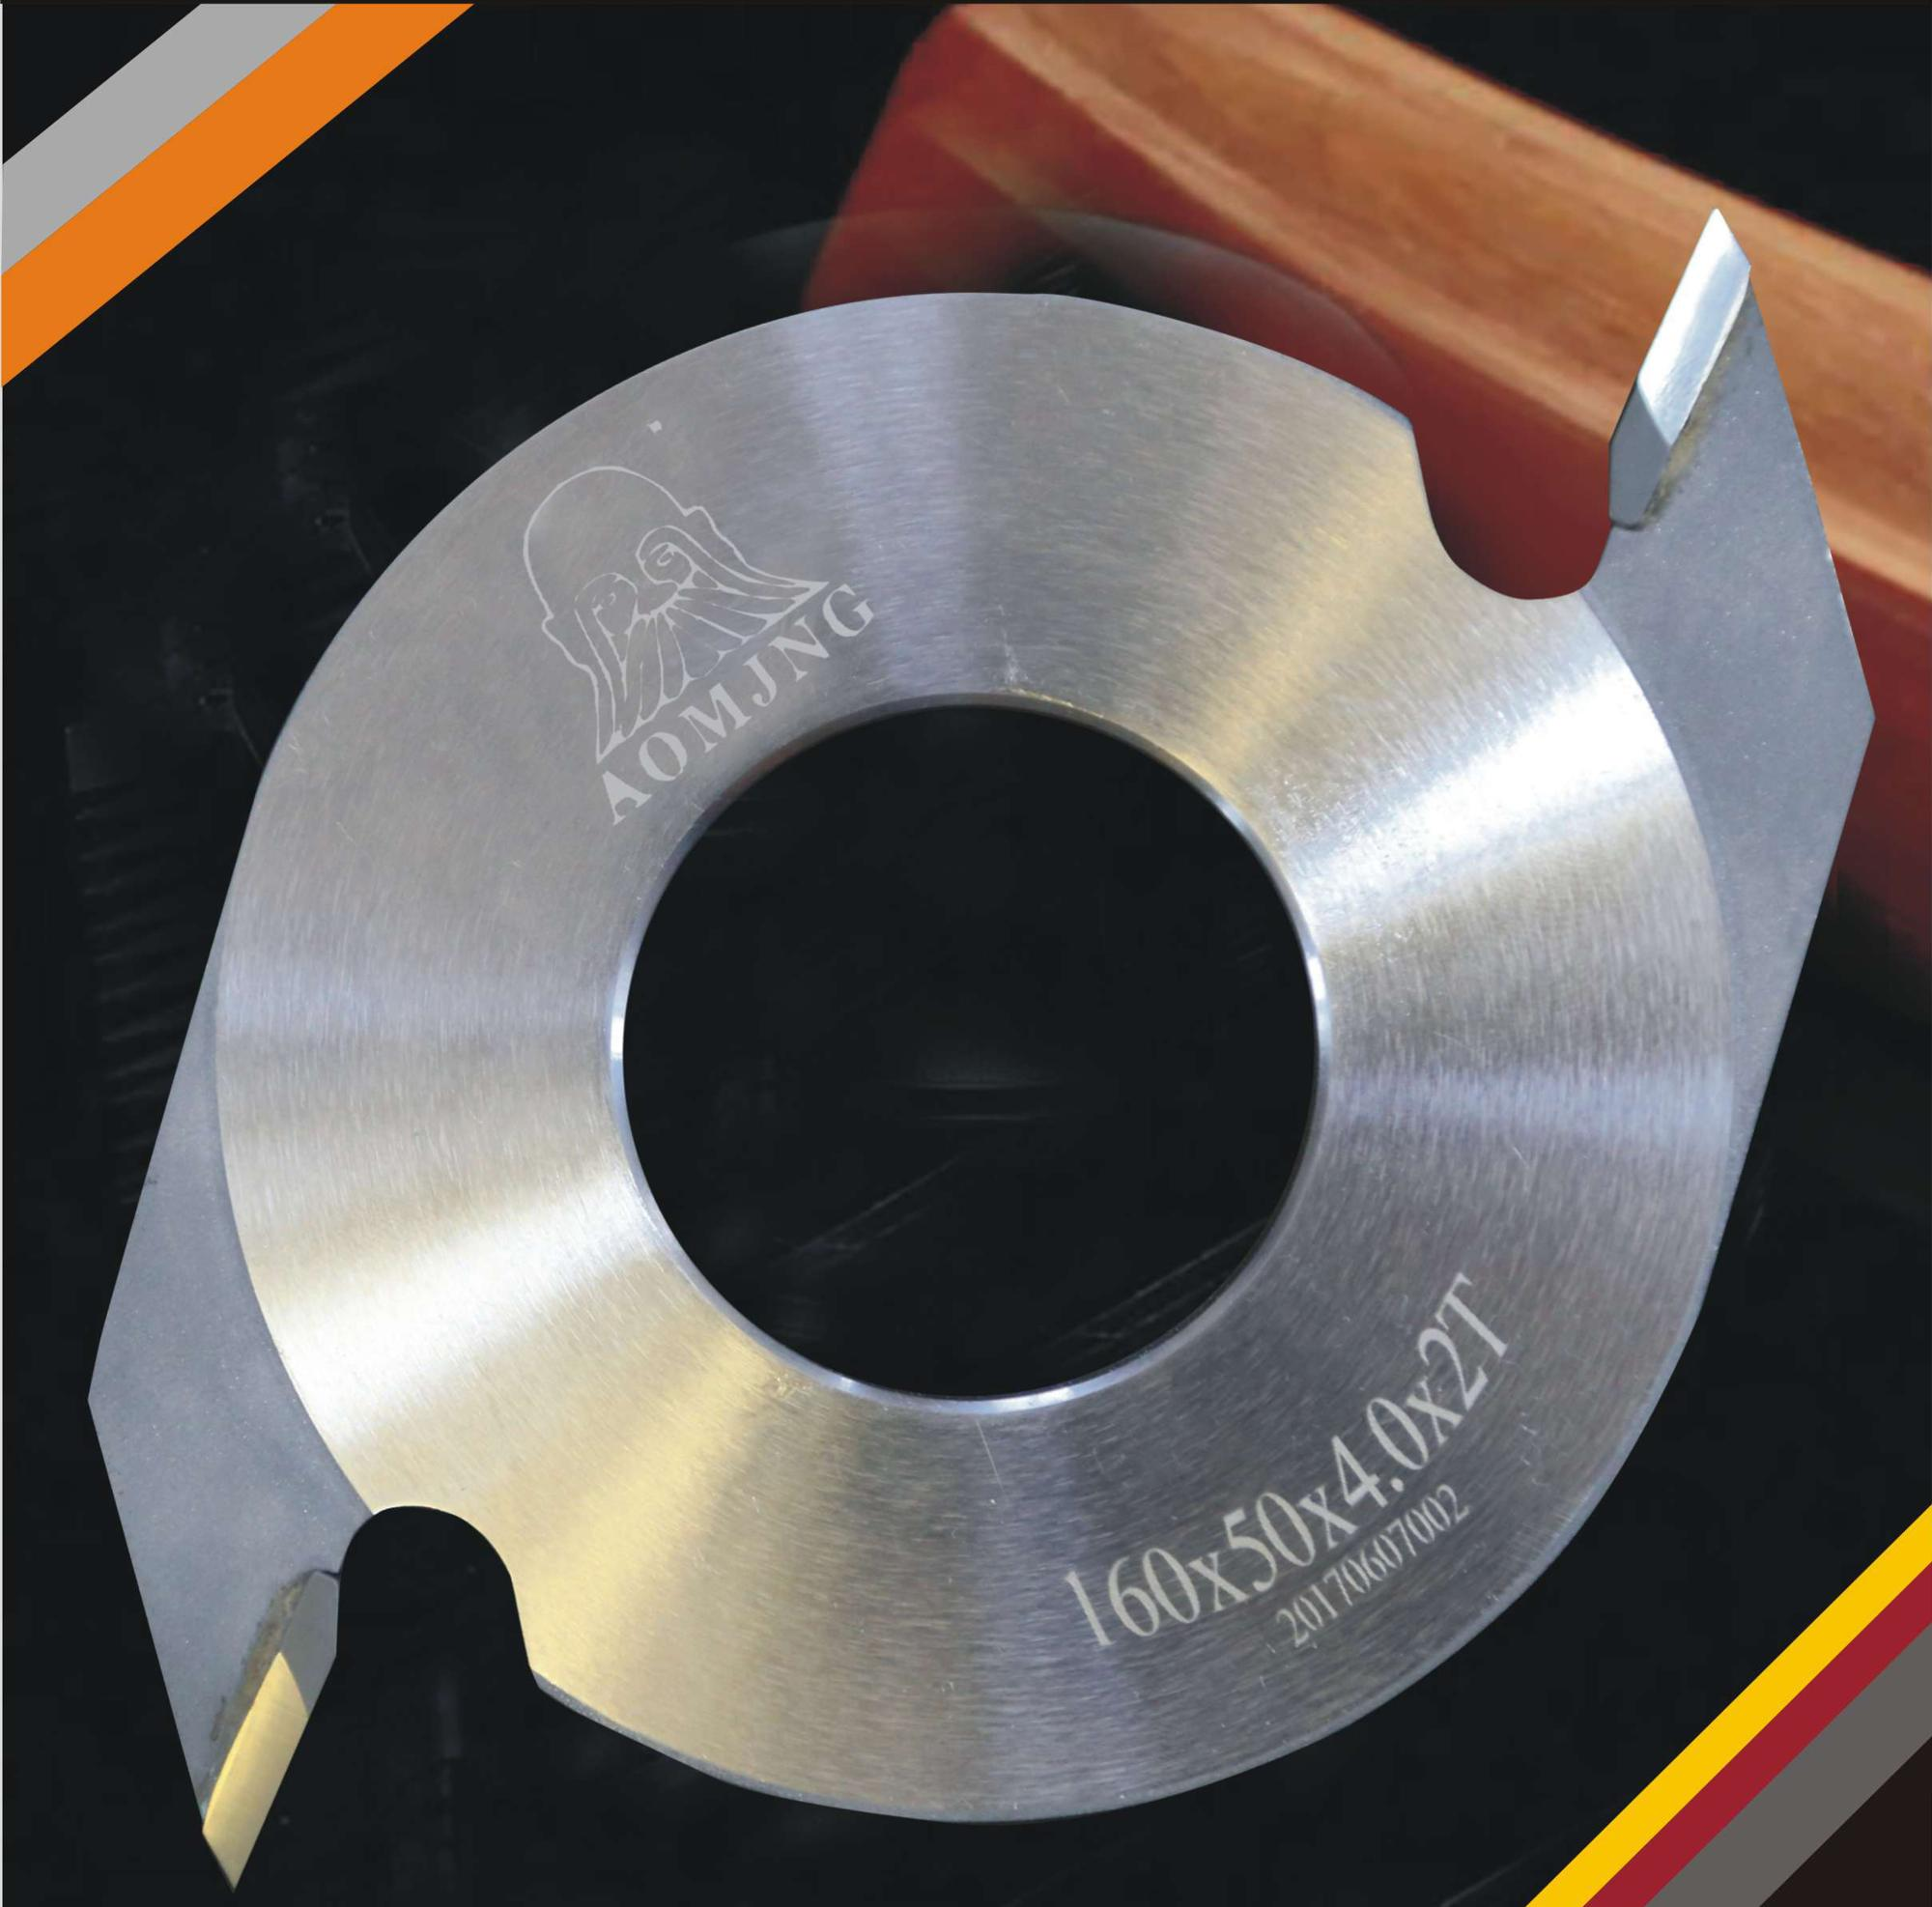 65Mn 2 wings / tooth finger joint cutter for soft wood